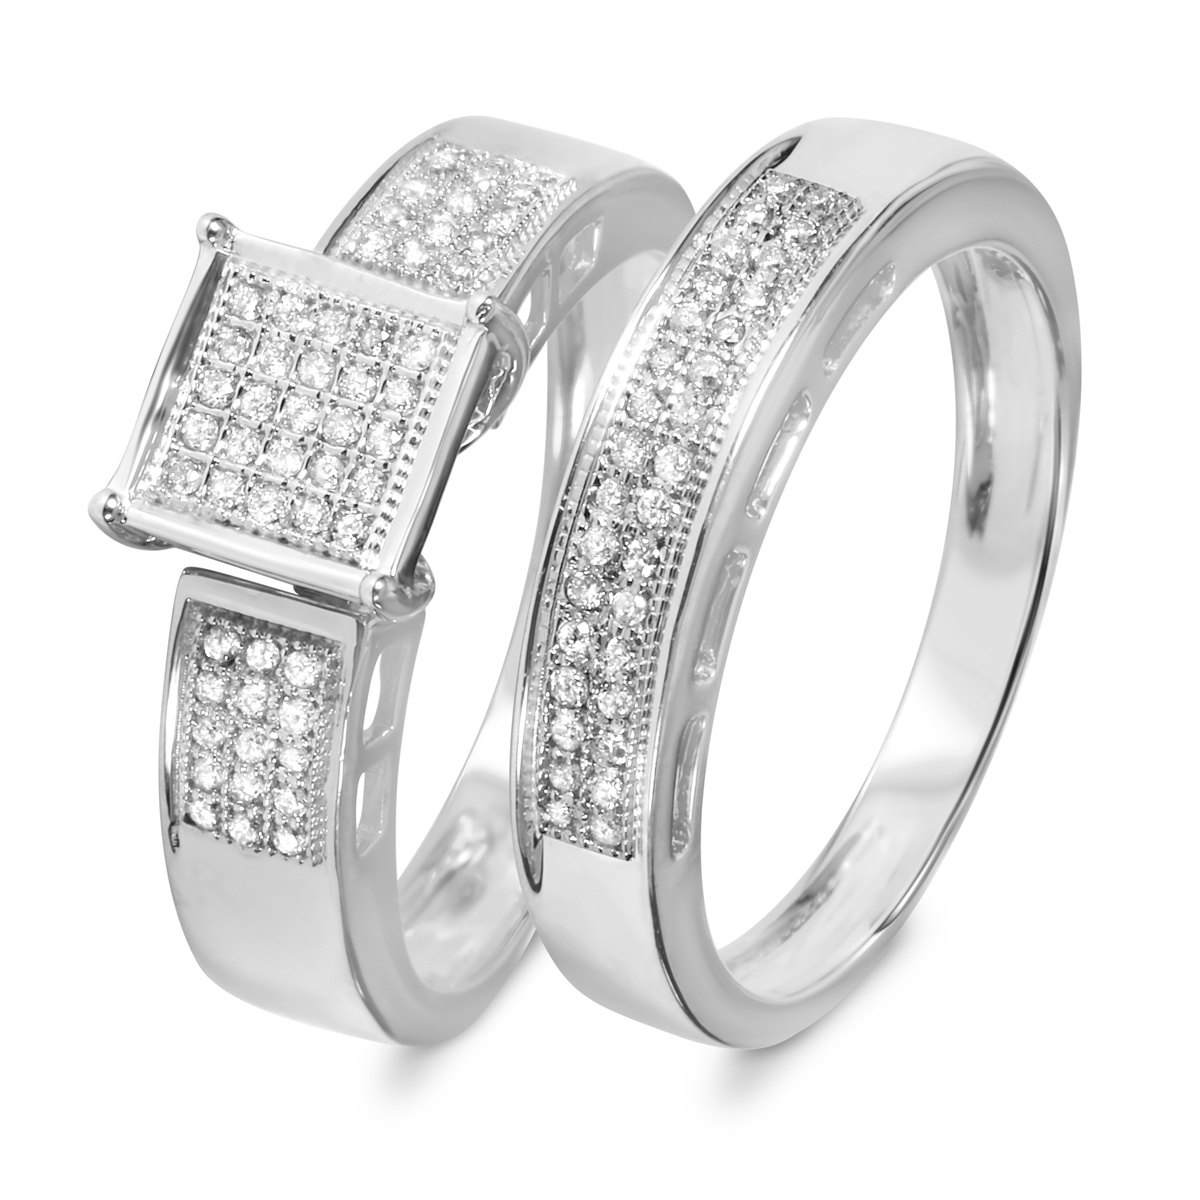 1 4 carat bridal wedding ring set 14k white gold